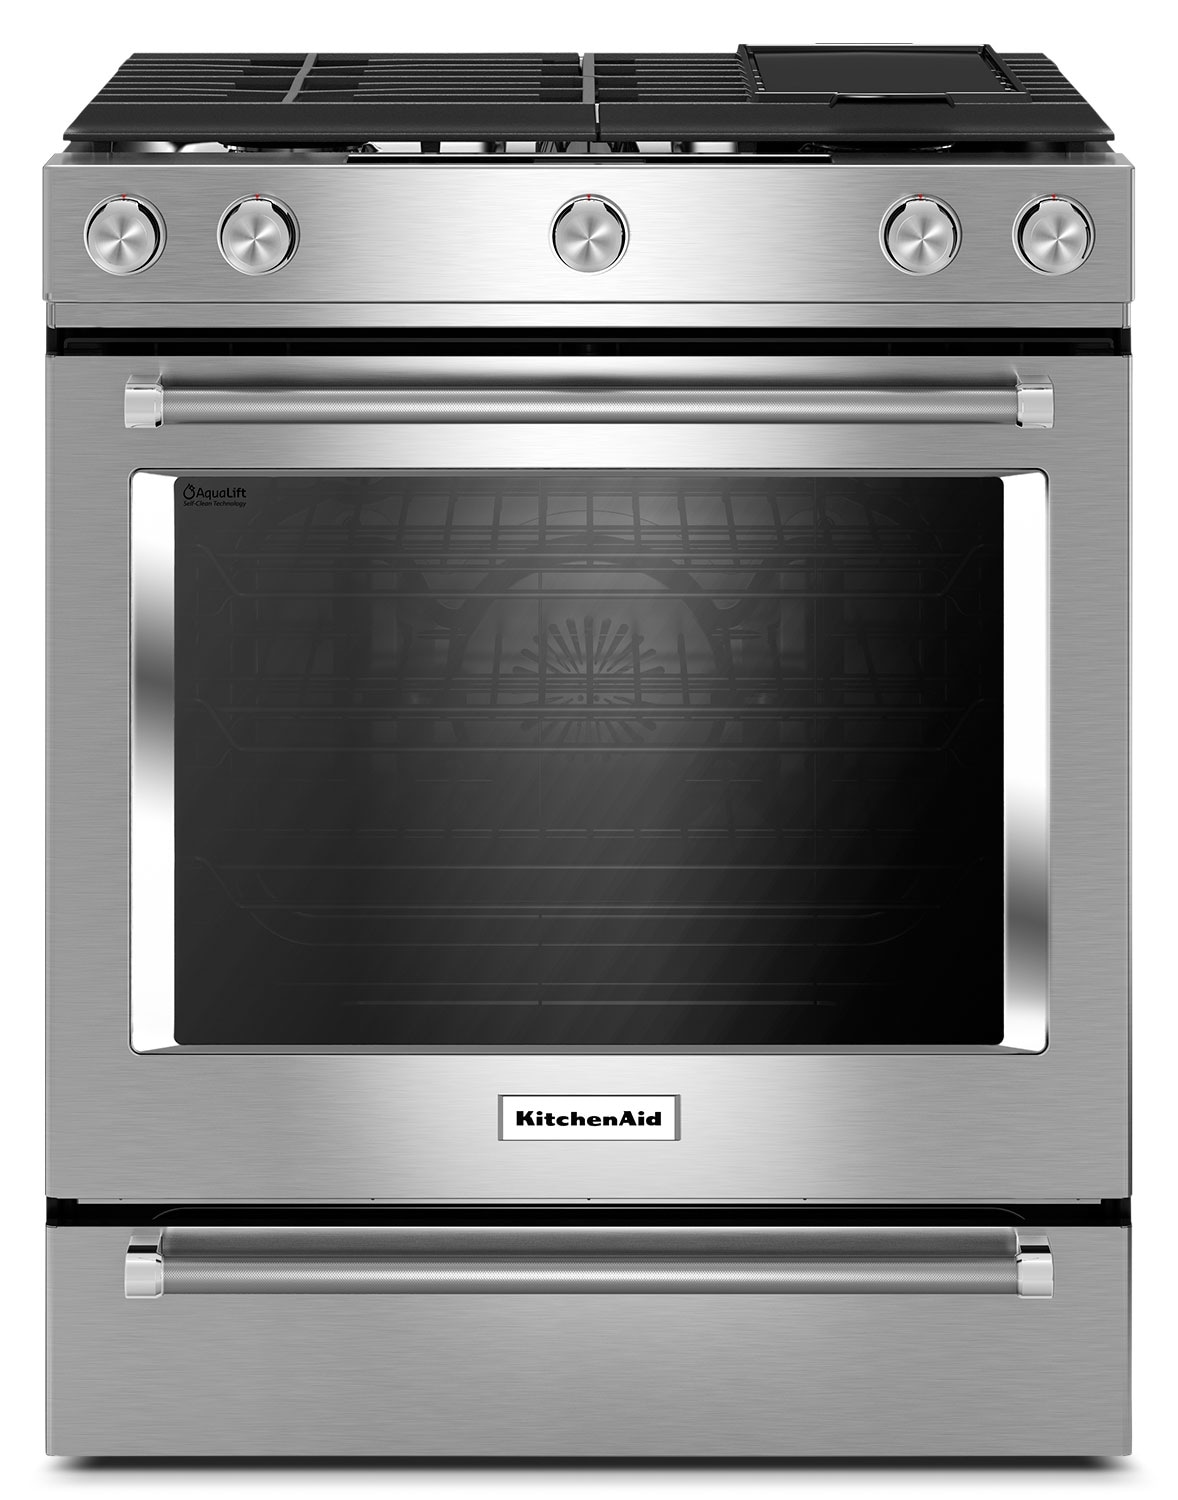 KitchenAid 7.1 Cu. Ft. Slide-In Dual Fuel Range with Baking Drawer - Stainless Steel